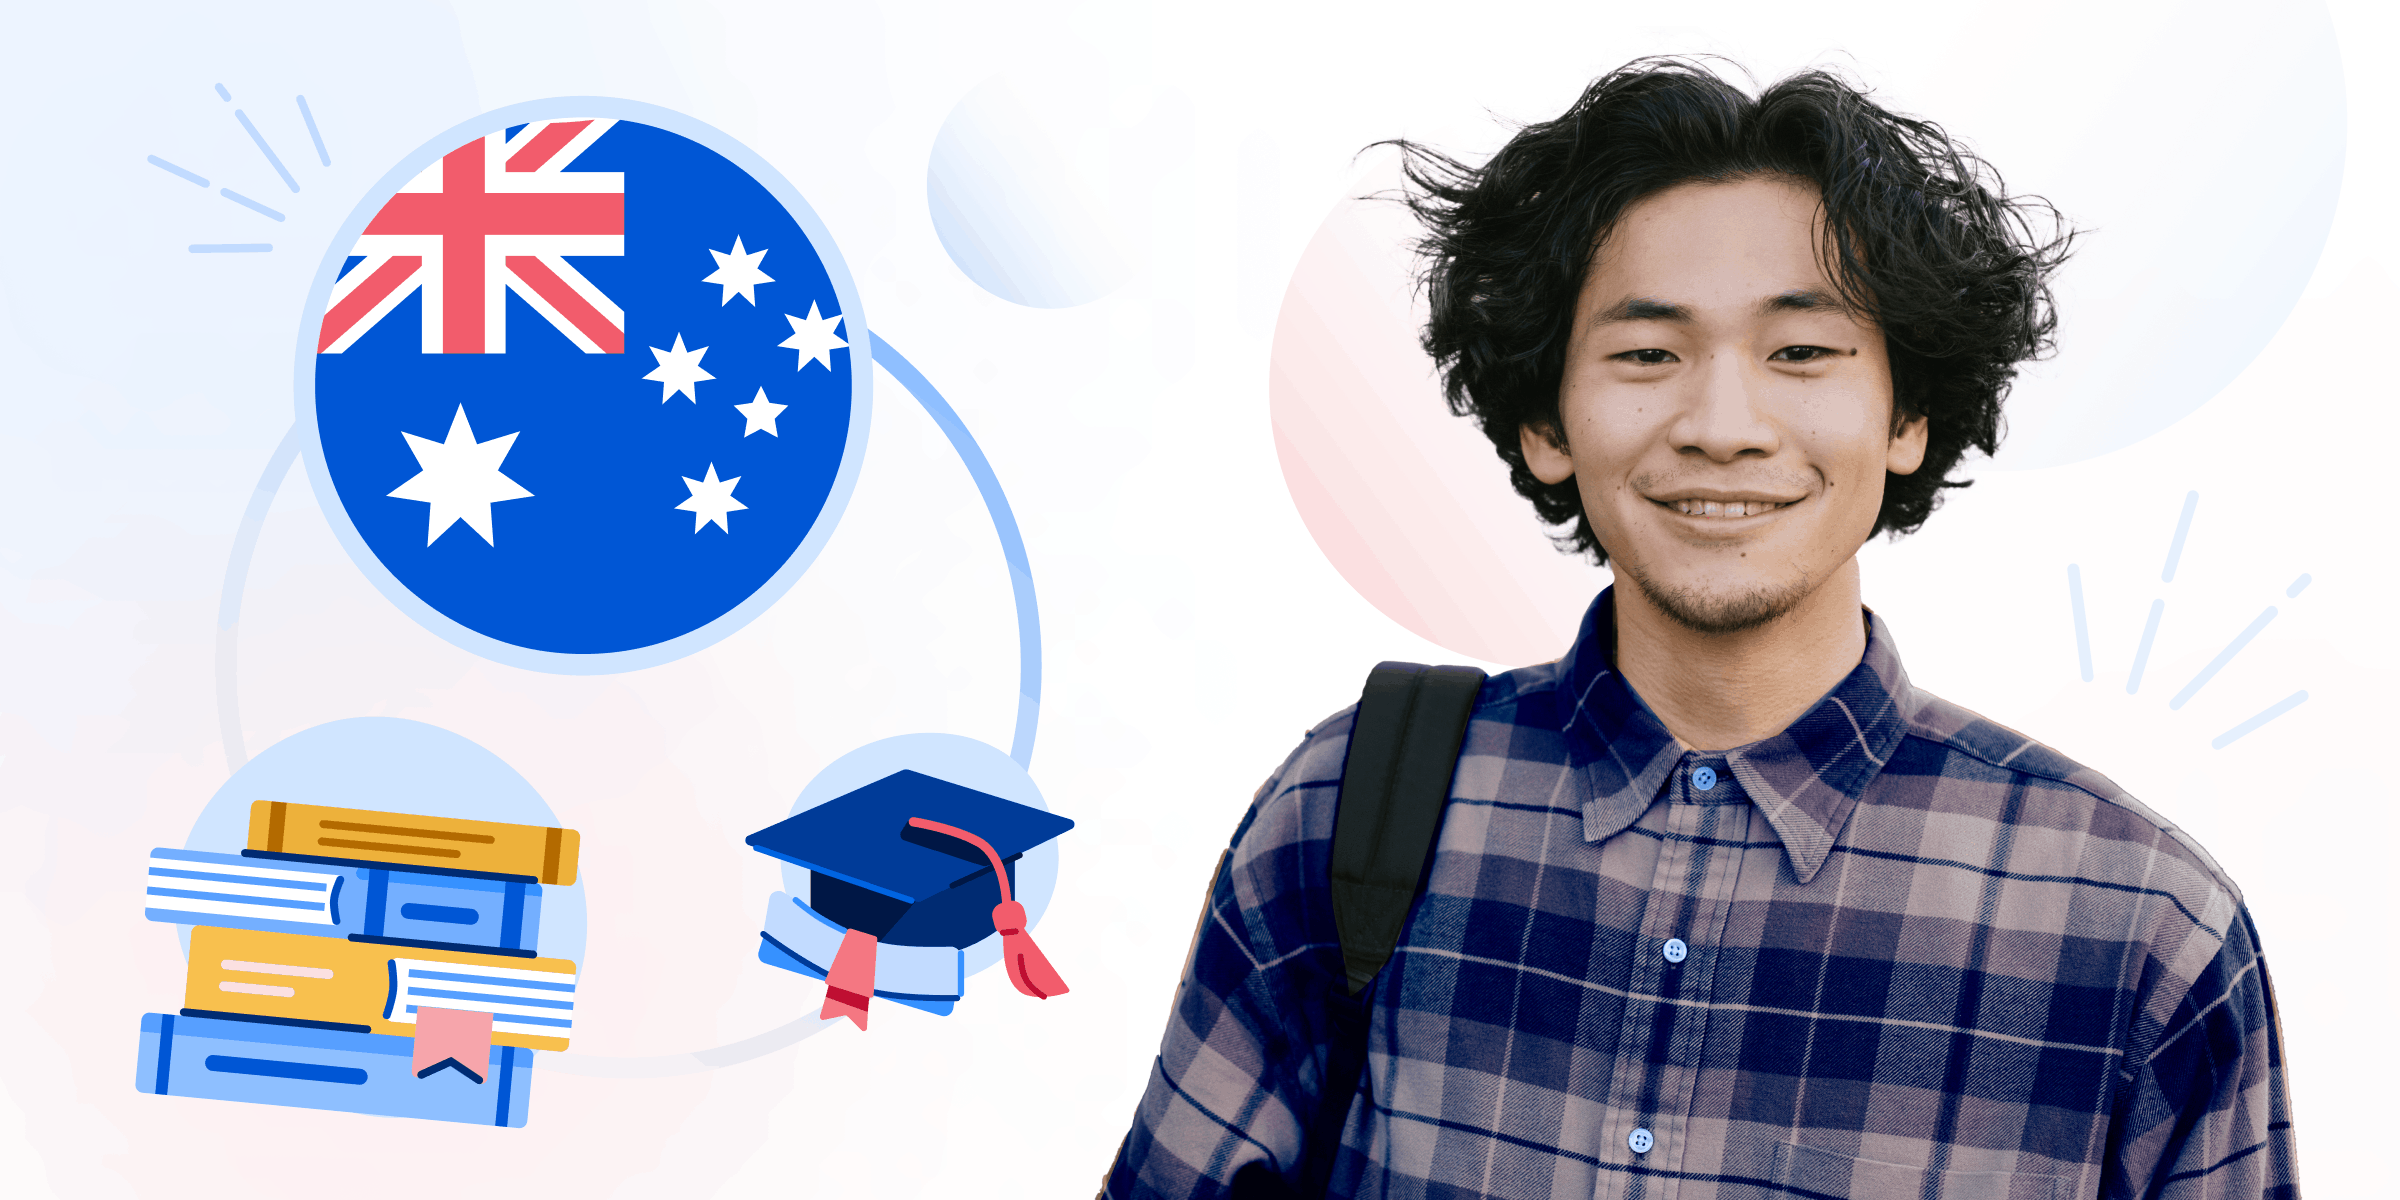 An illustration of a male student with Australia's flag, grad hat, and books graphic behind him.